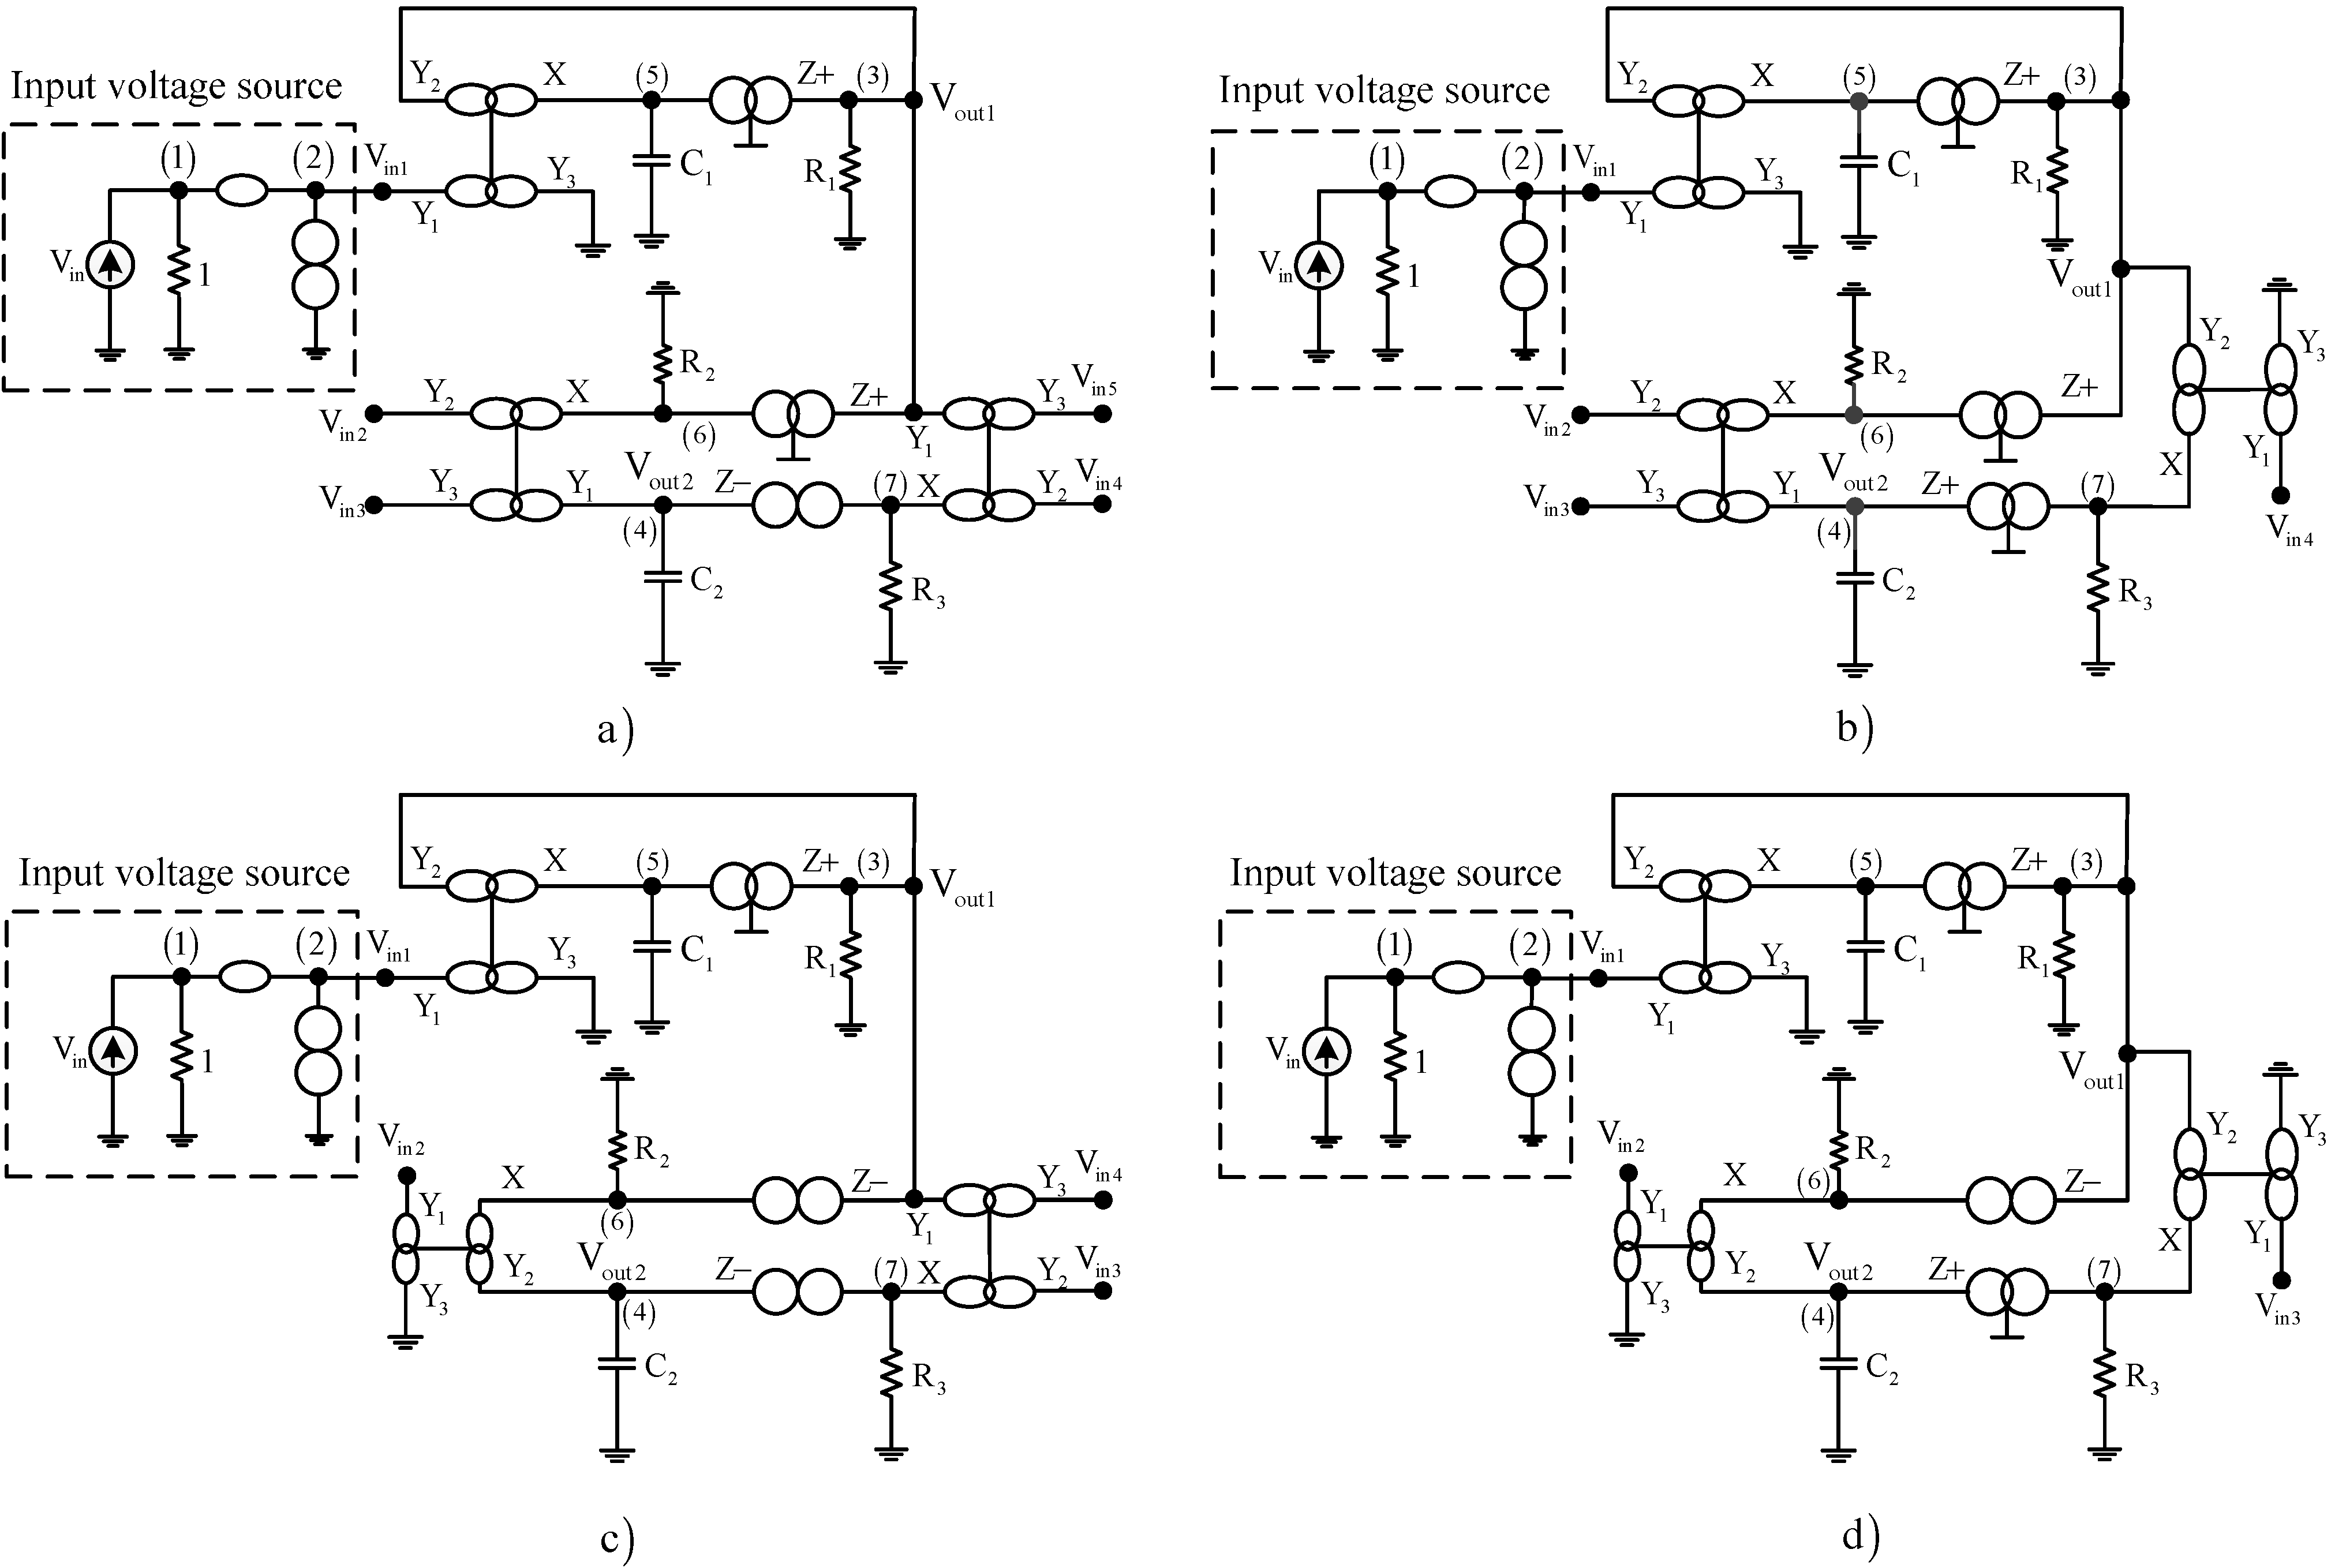 Applied Sciences Free Full Text Synthesis Of Cascadable Ddcc Circuit Diagram Voltage Source No